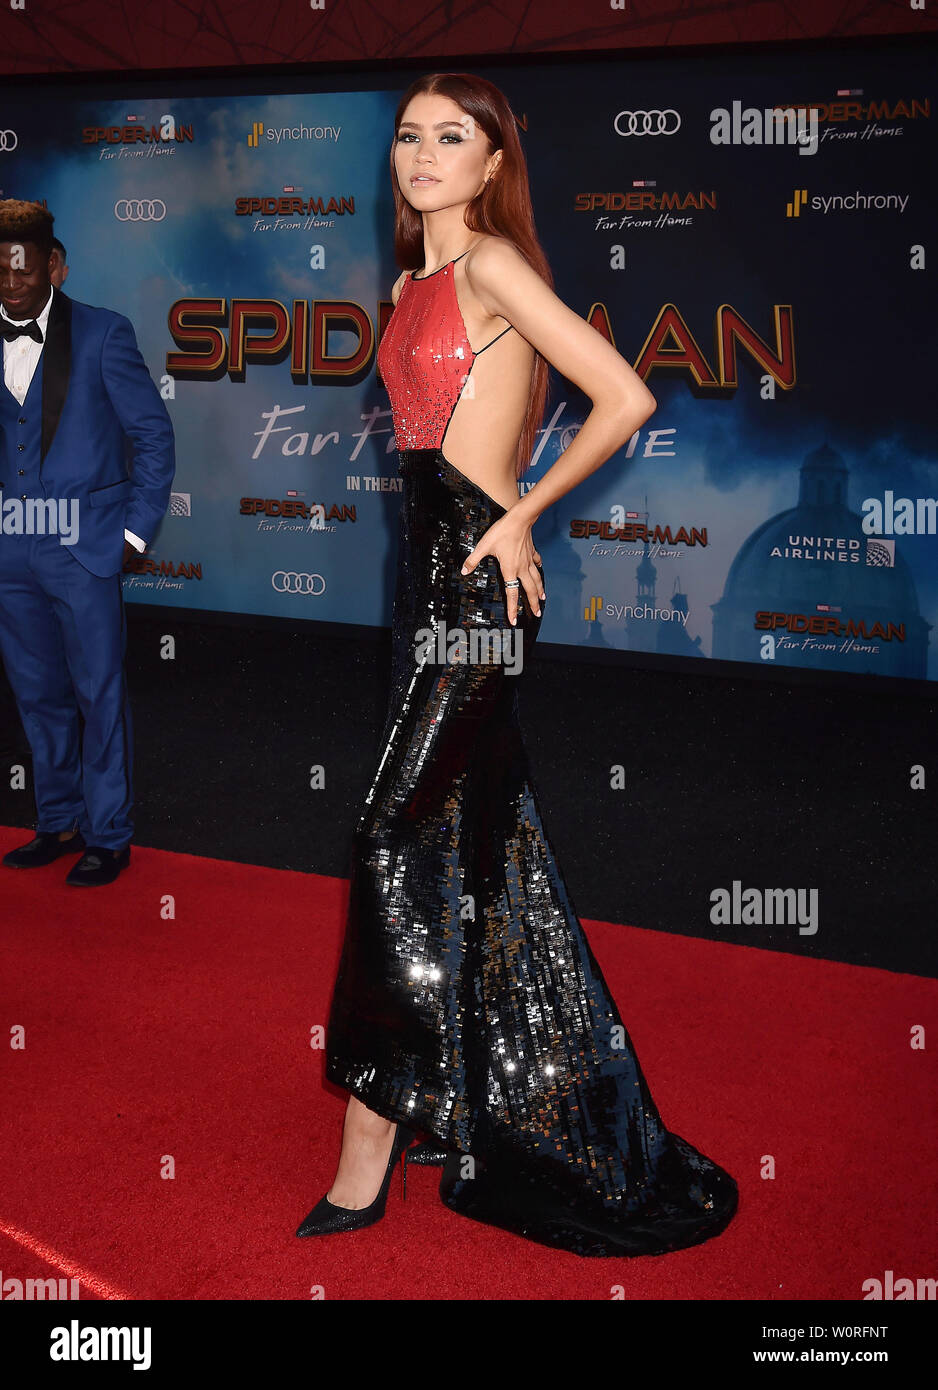 "HOLLYWOOD, CA - JUNE 26: Zendaya attends the premiere of Sony Pictures' ""Spider-Man Far From Home"" at TCL Chinese Theatre on June 26, 2019 in Hollywood, California. Stock Photo"